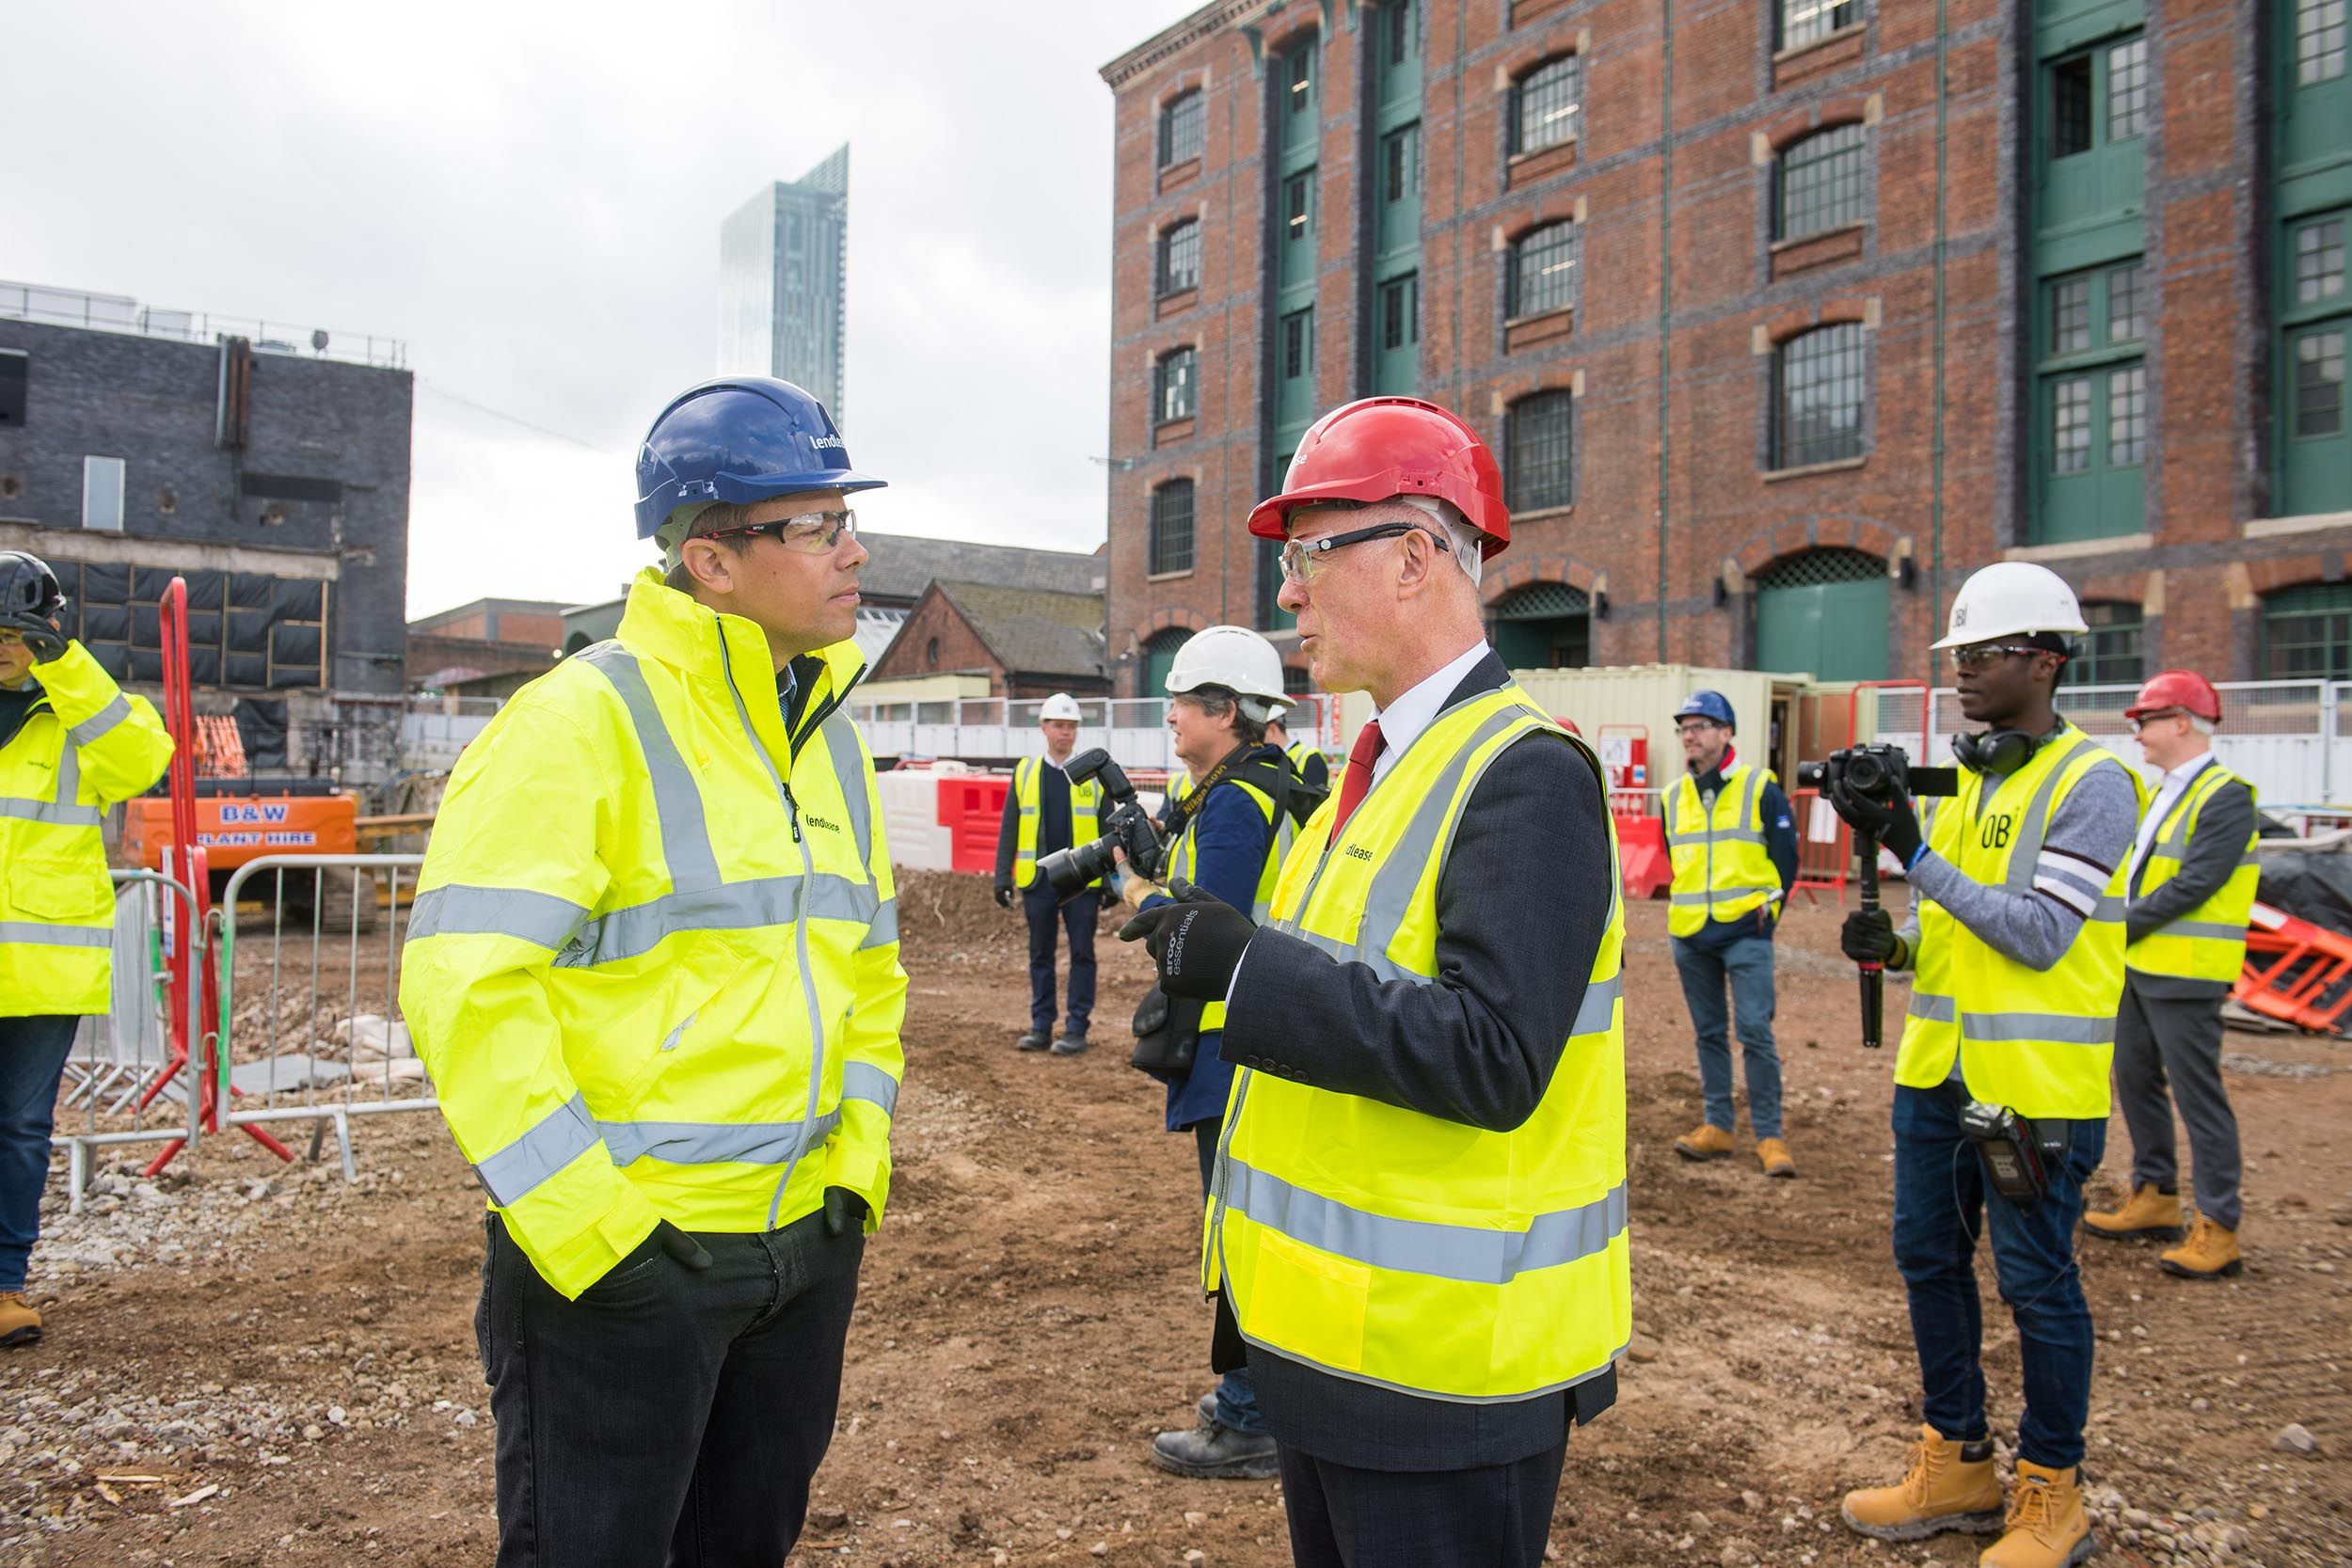 Ground Breaking Ceremony at old Granada TV Site in Manchester for booking.com St John's Quarter in Manchester